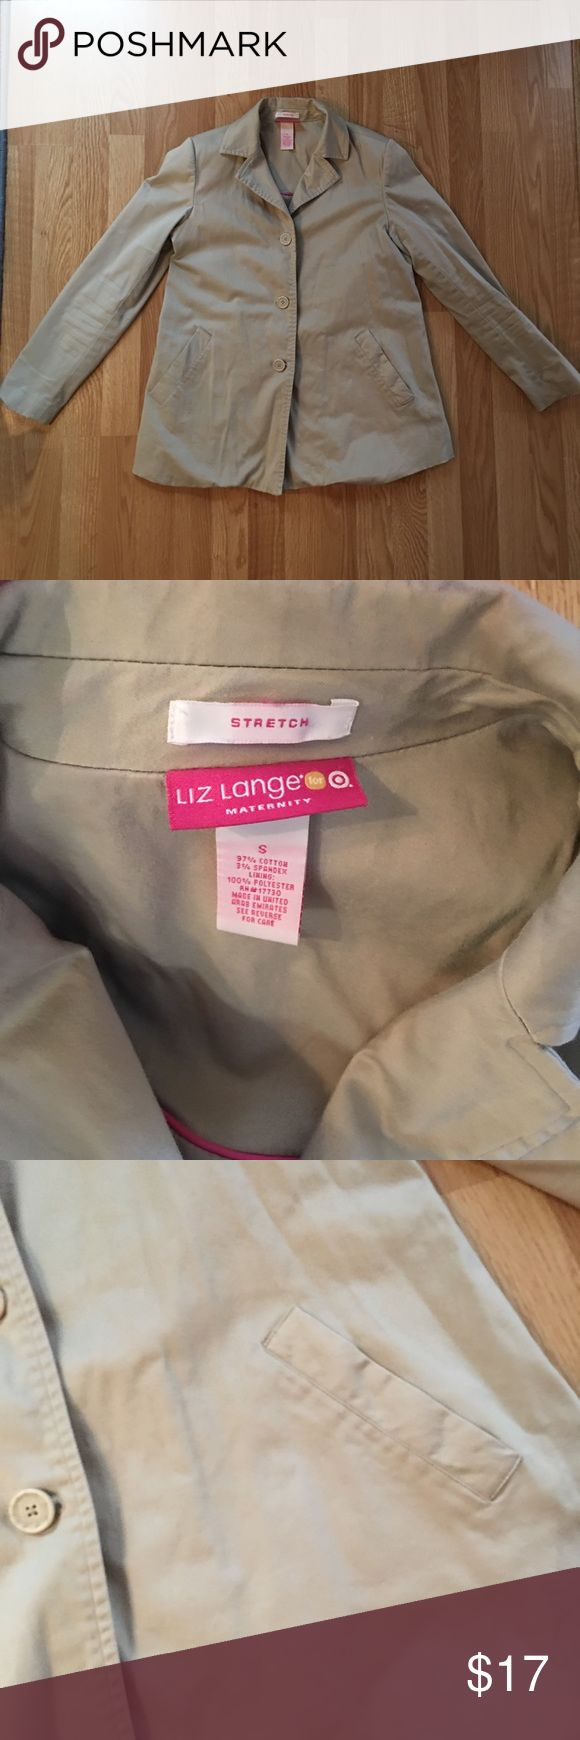 Super cute Maternity blazer / jacket Liz Lang Maternity blazer. Cream colored and super flattering layering piece! Has very small shoulder pads. Size small. Stretchy and very comfortable. Liz Lange Jackets & Coats Blazers